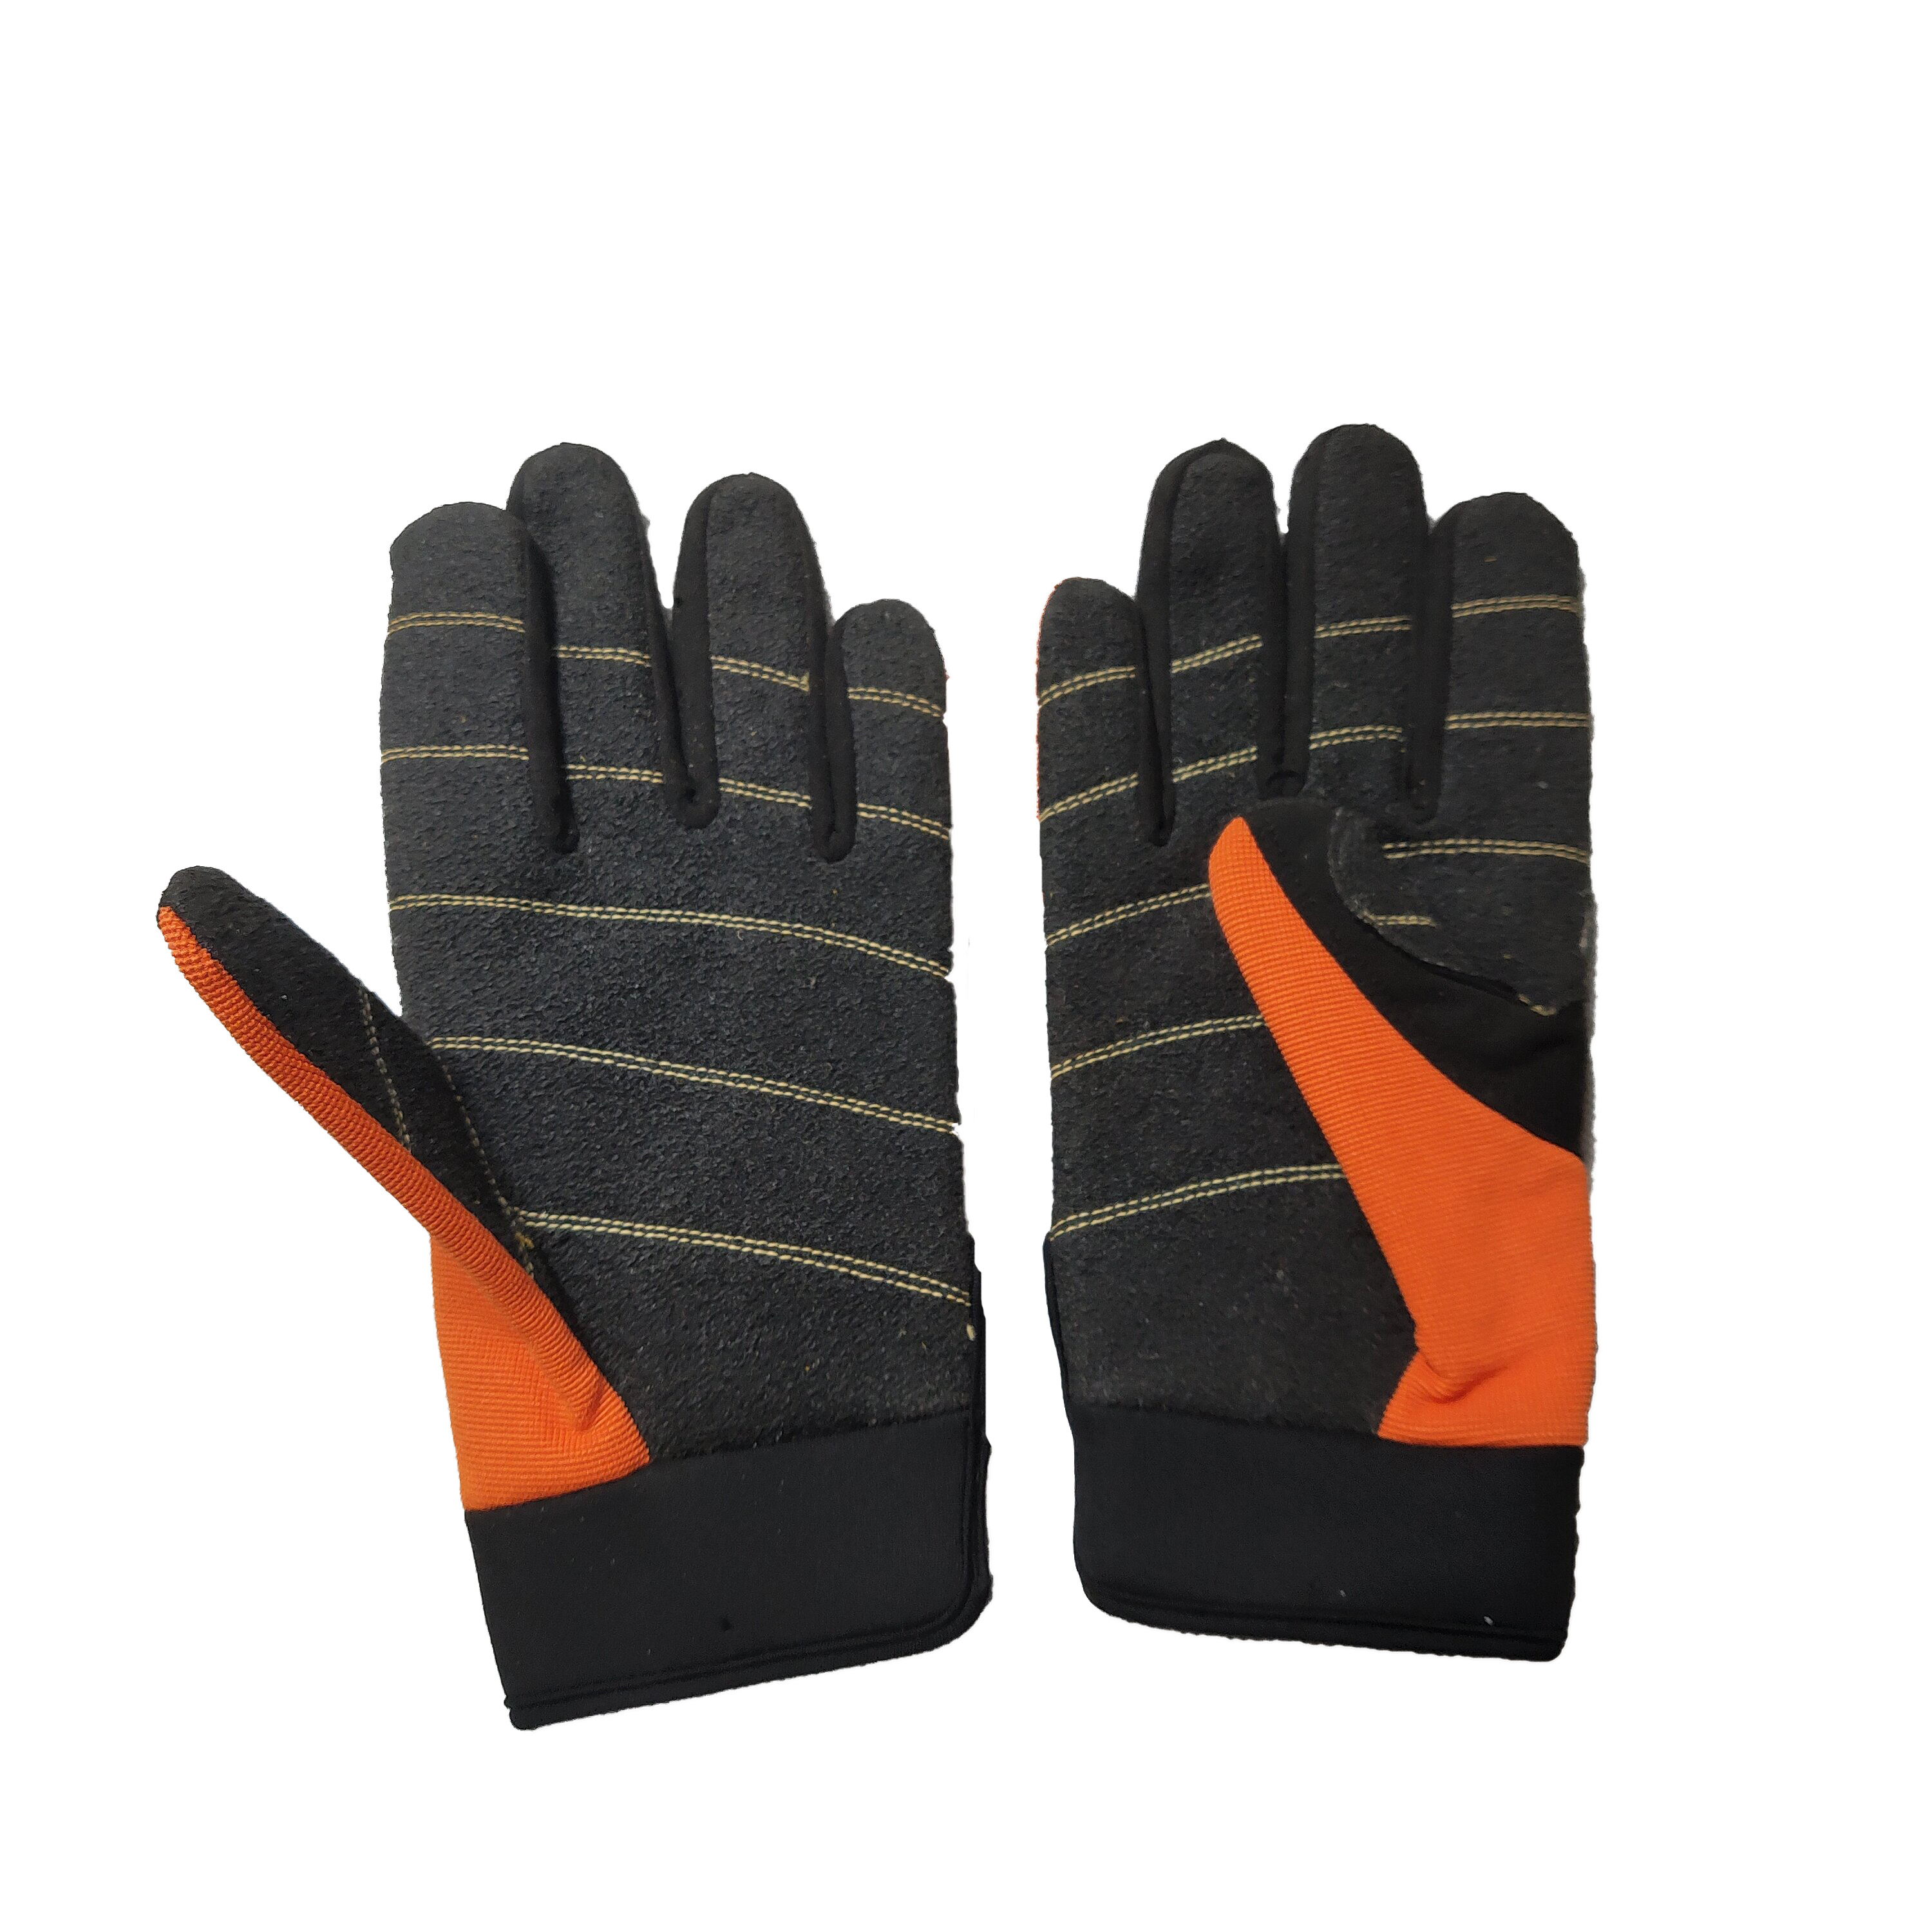 Wingter Durable Crinkle palm Ottoman Knitted Anti Skid Mechanical safety working Gloves